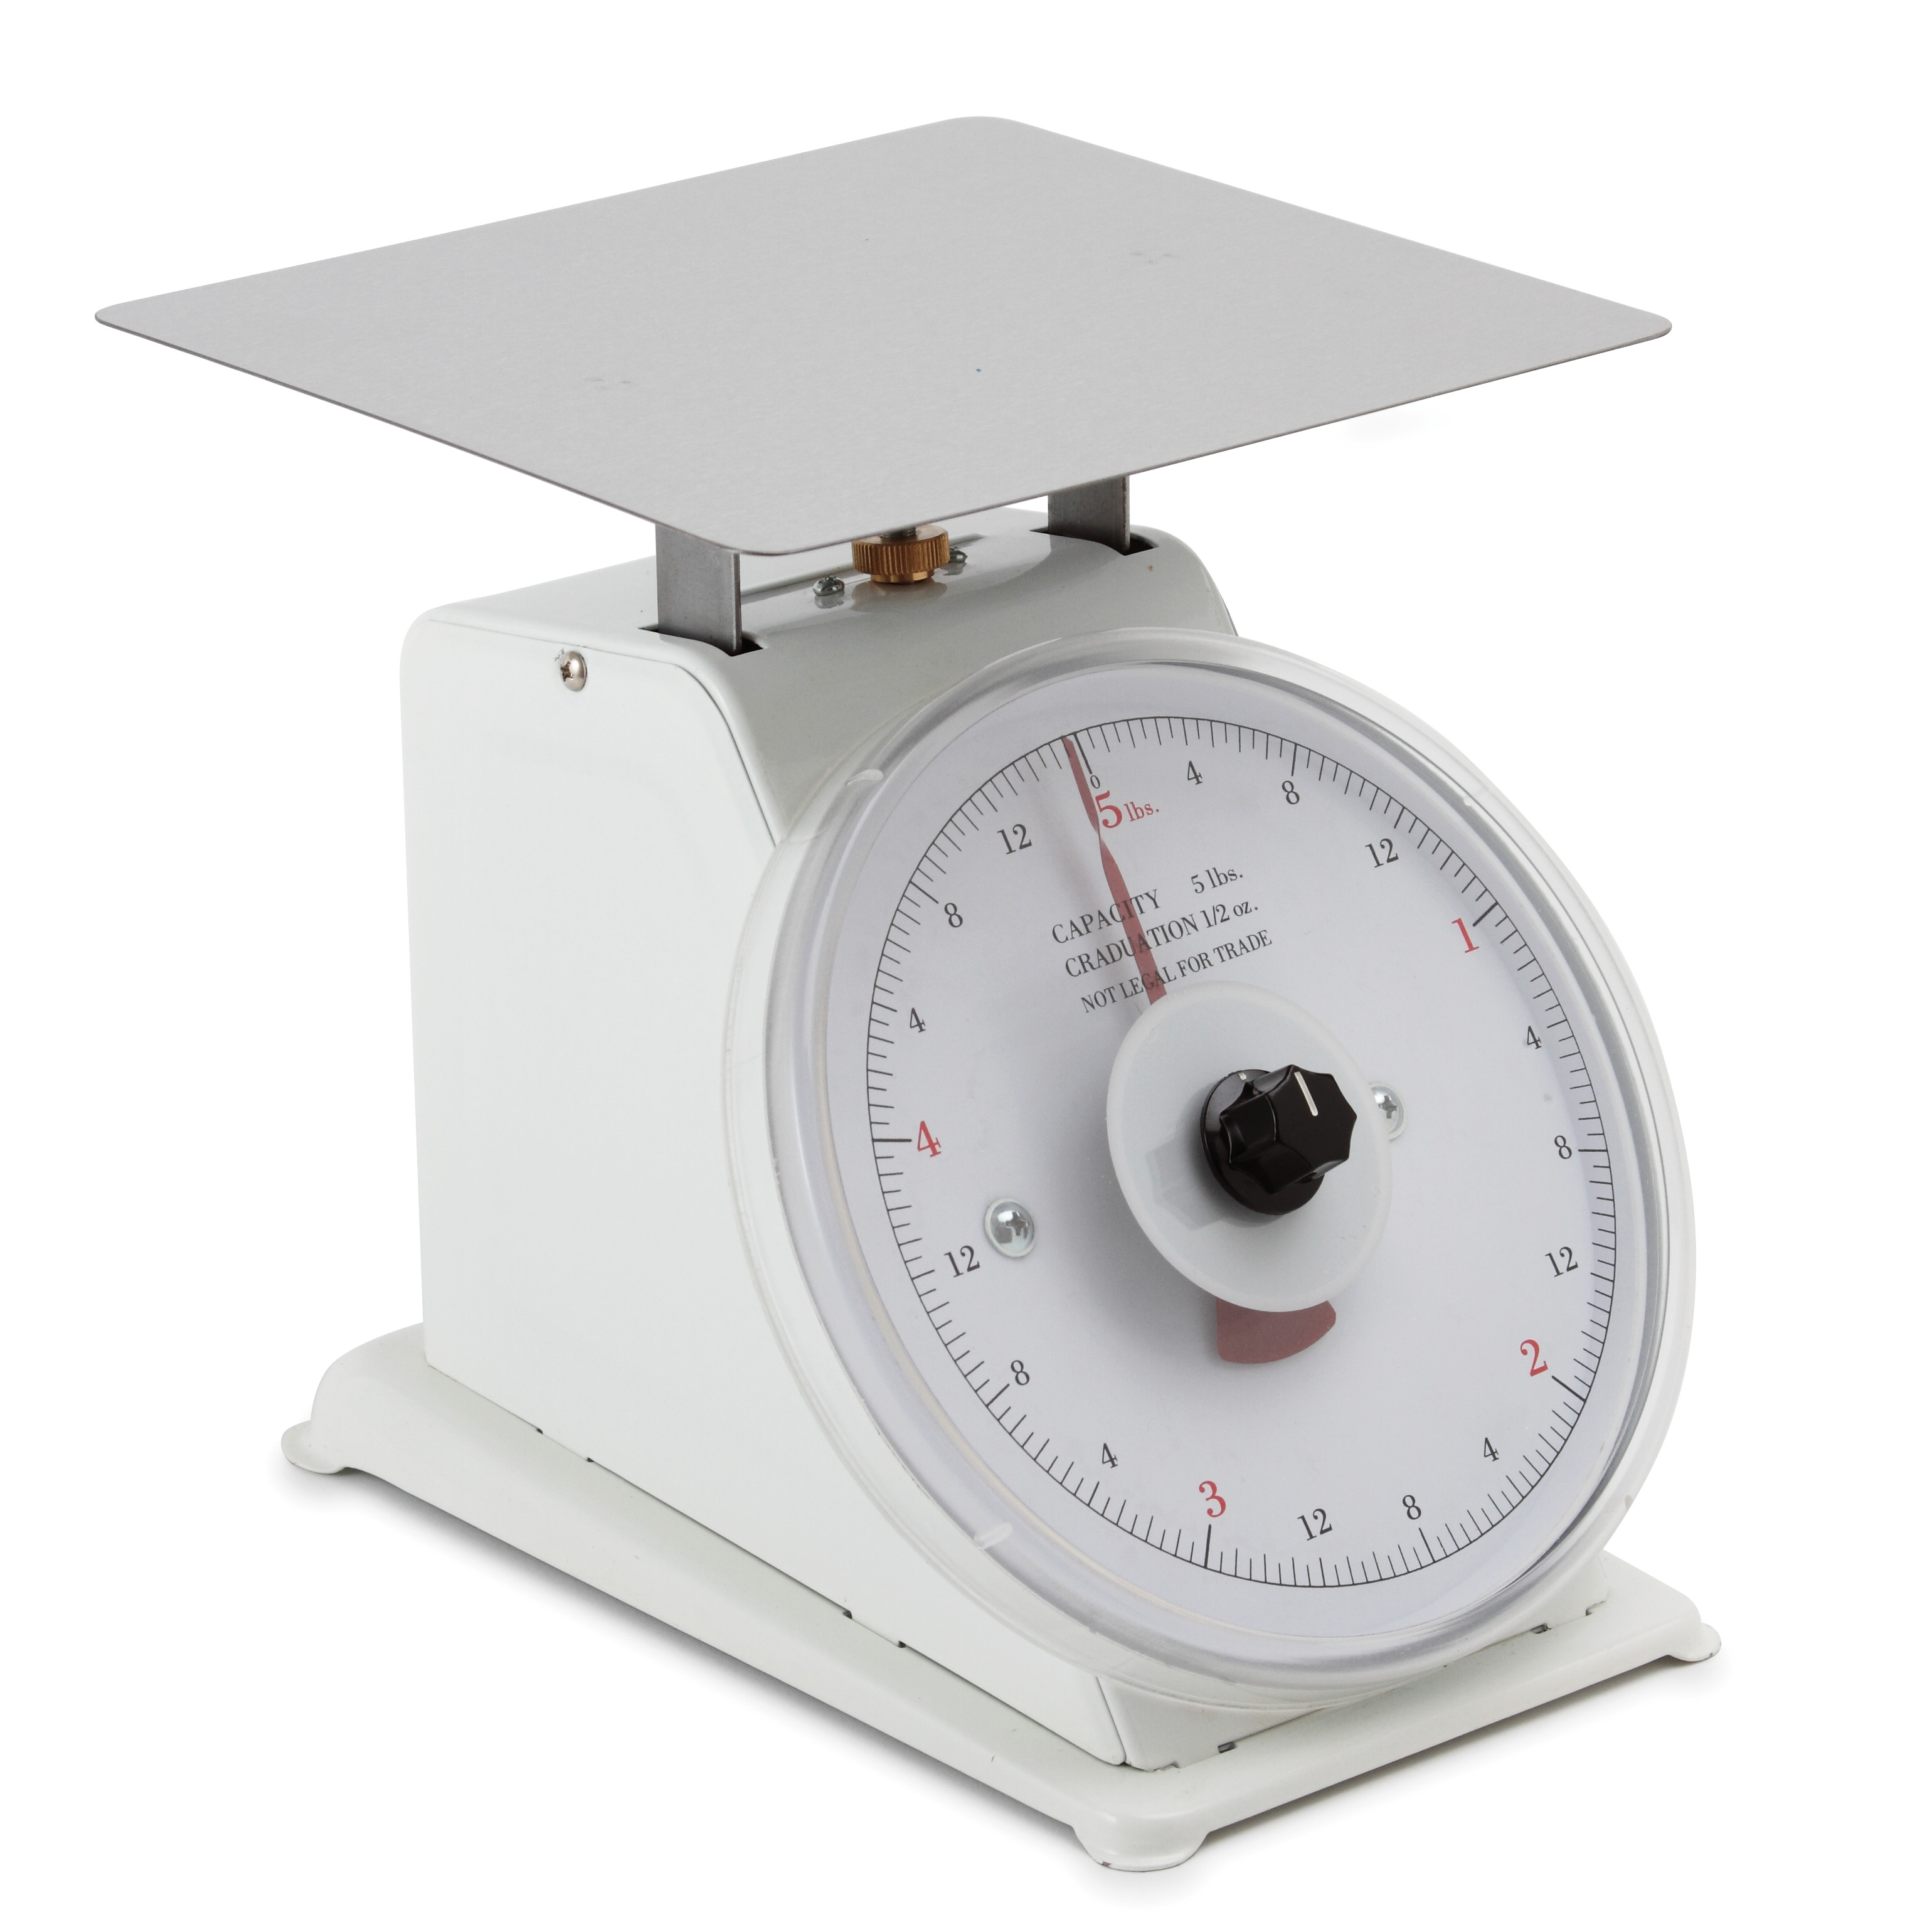 Royal Industries ROY S 6 5 R scale, portion, dial